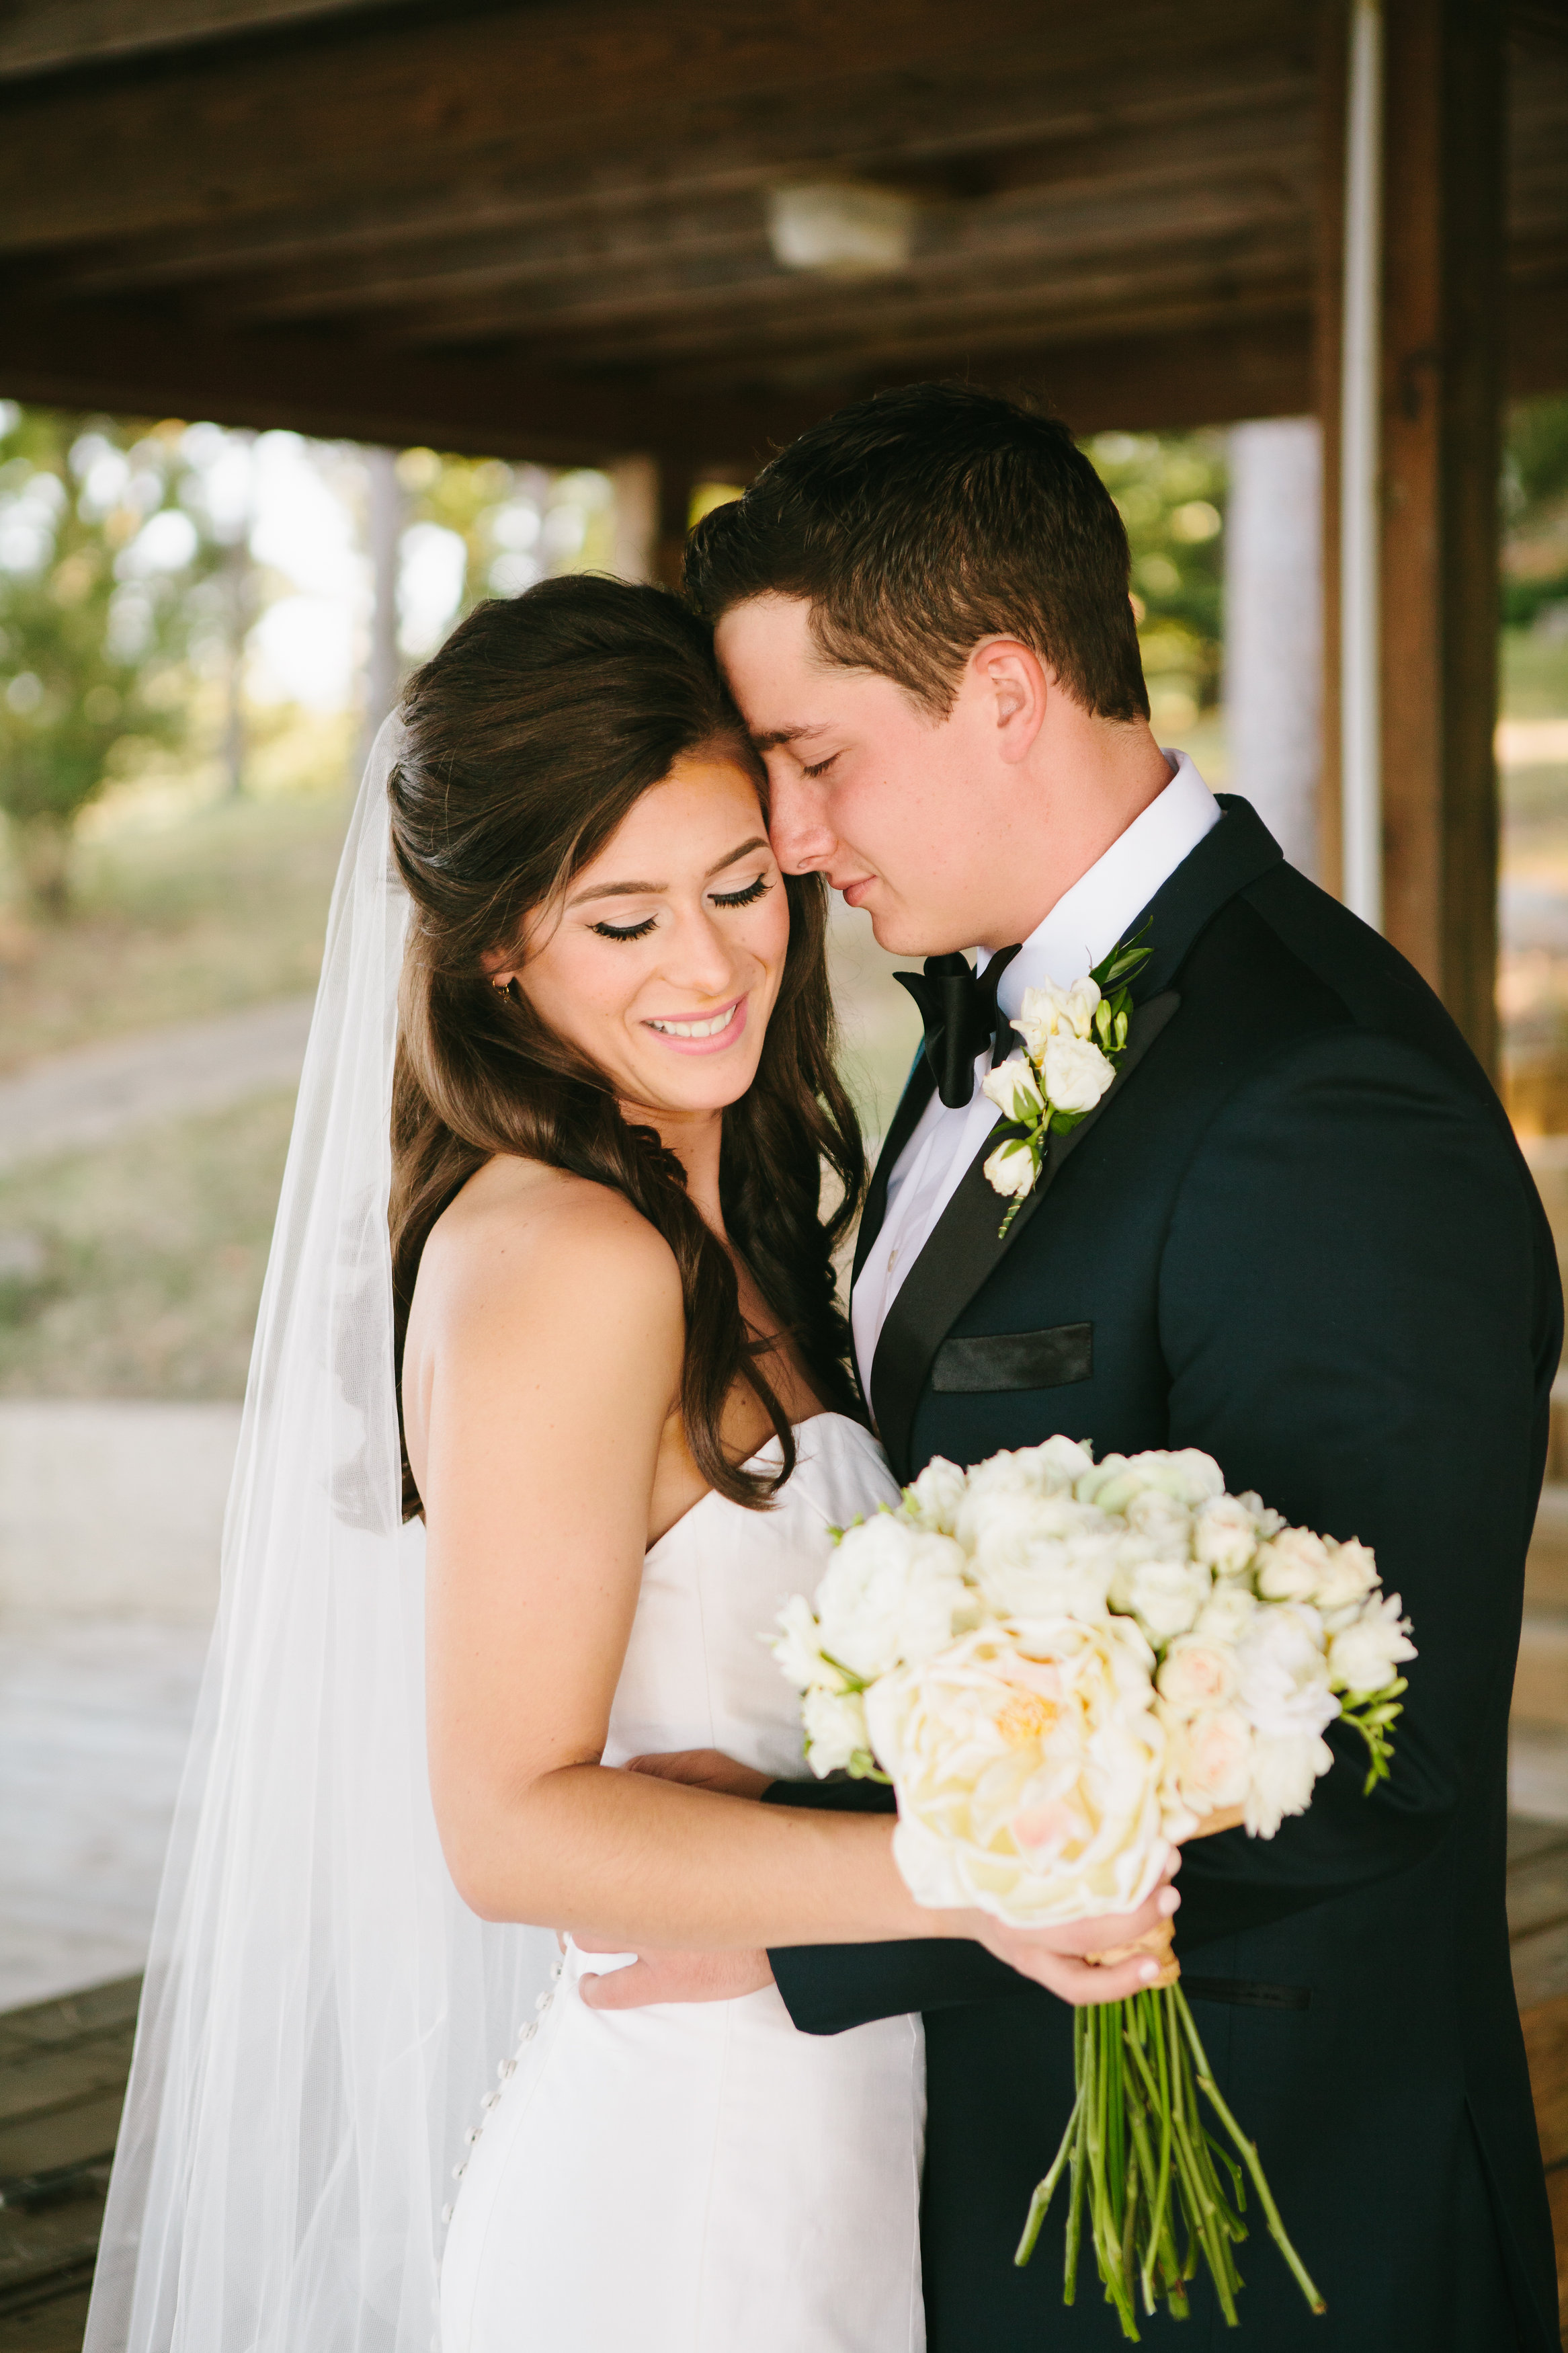 Are You Getting Ready to Deliver Your Groom's Speech? - Plan